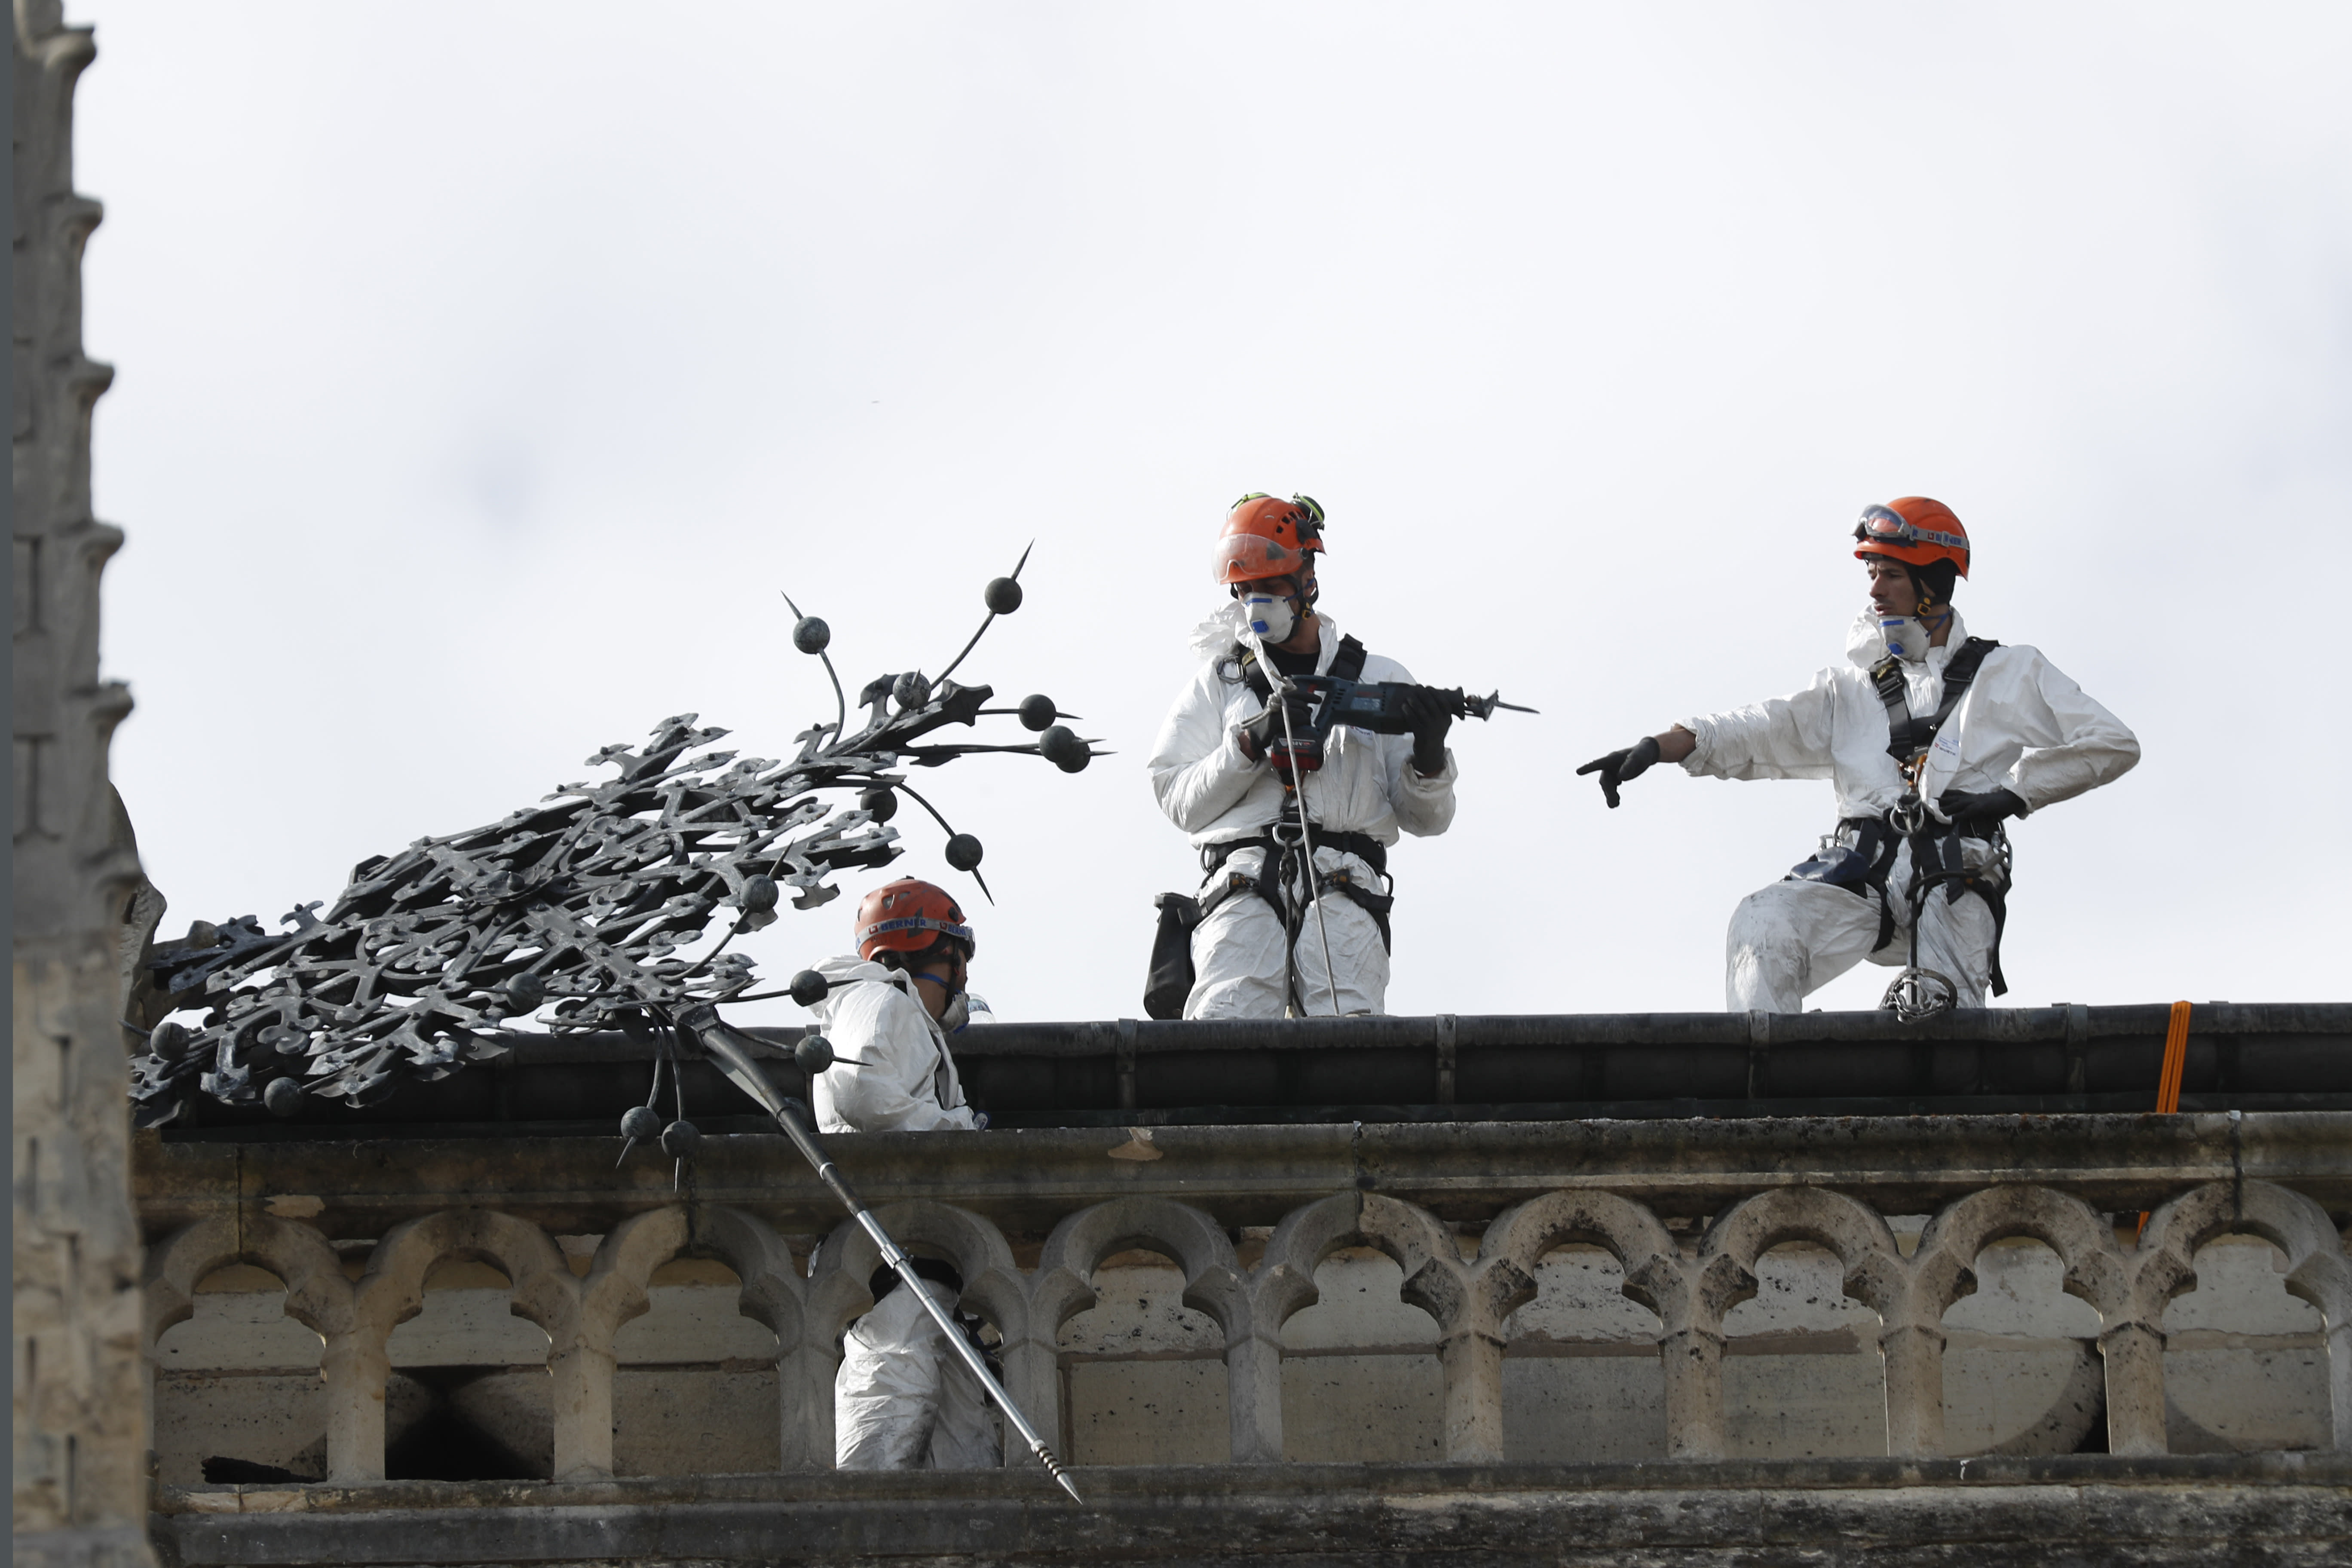 Workers stand on a roof of Notre Dame cathedral Wednesday, April 24, 2019 in Paris. Professional mountain climbers were hired to install synthetic, waterproof tarps over the gutted, exposed exterior of Notre Dame Cathedral, as authorities raced to prevent further damage ahead of storms that are rolling in toward Paris. (AP Photo/Thibault Camus)